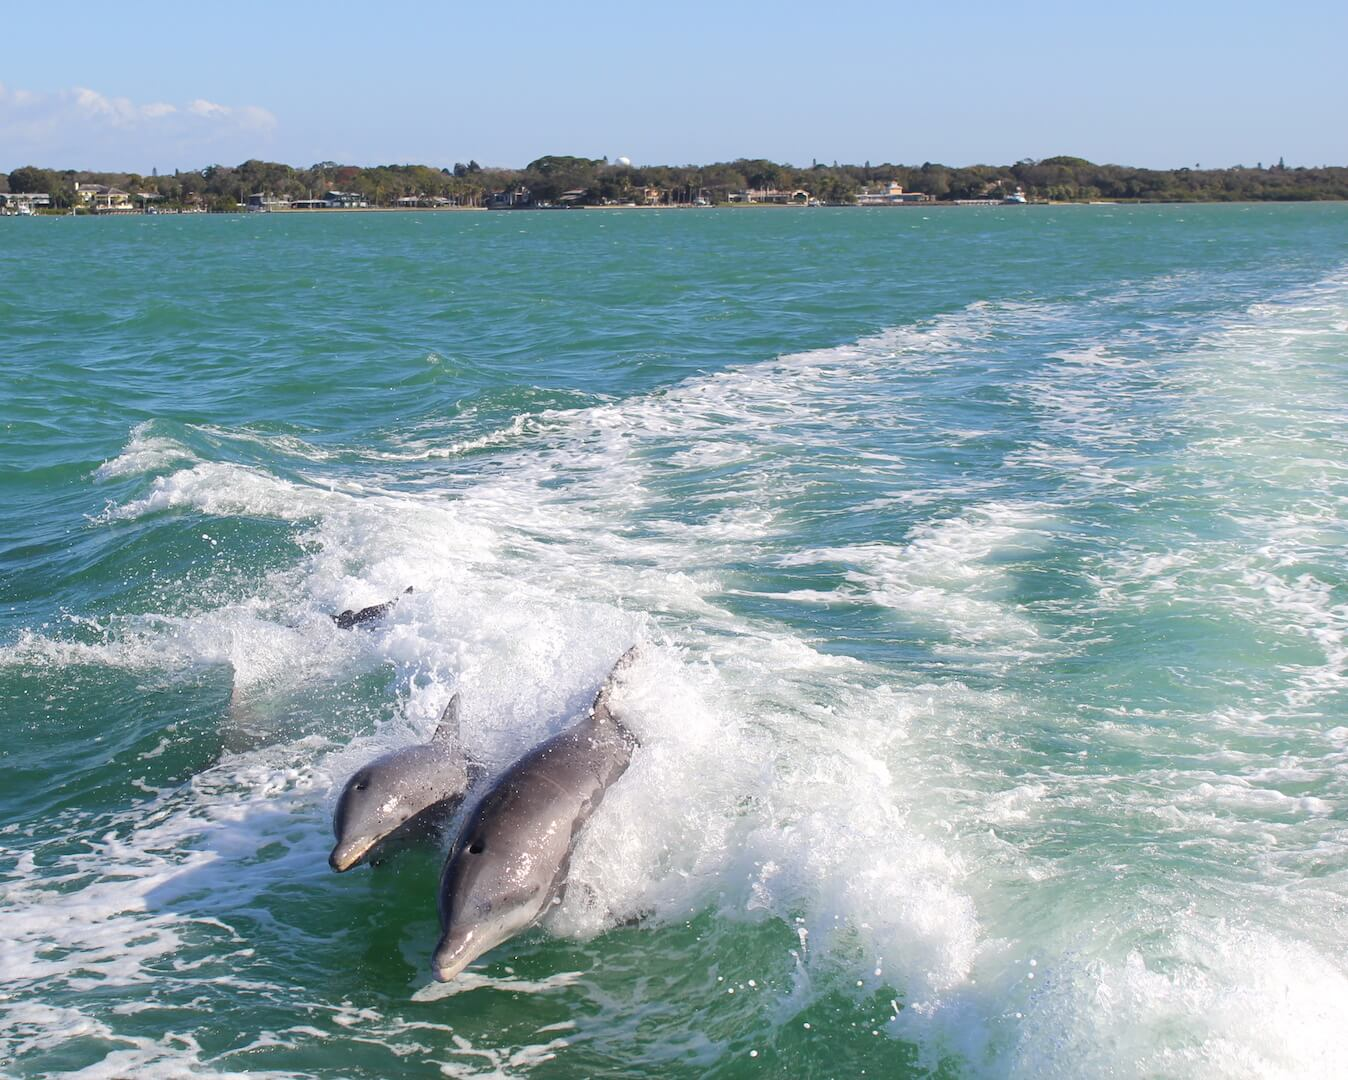 Dolphins play in the wake of a boat. Southwest Florida has dozens of opportunities to see dolphins whether from your beachfront balcony or on a tour. Must Do Visitor Guides, MustDo.com.